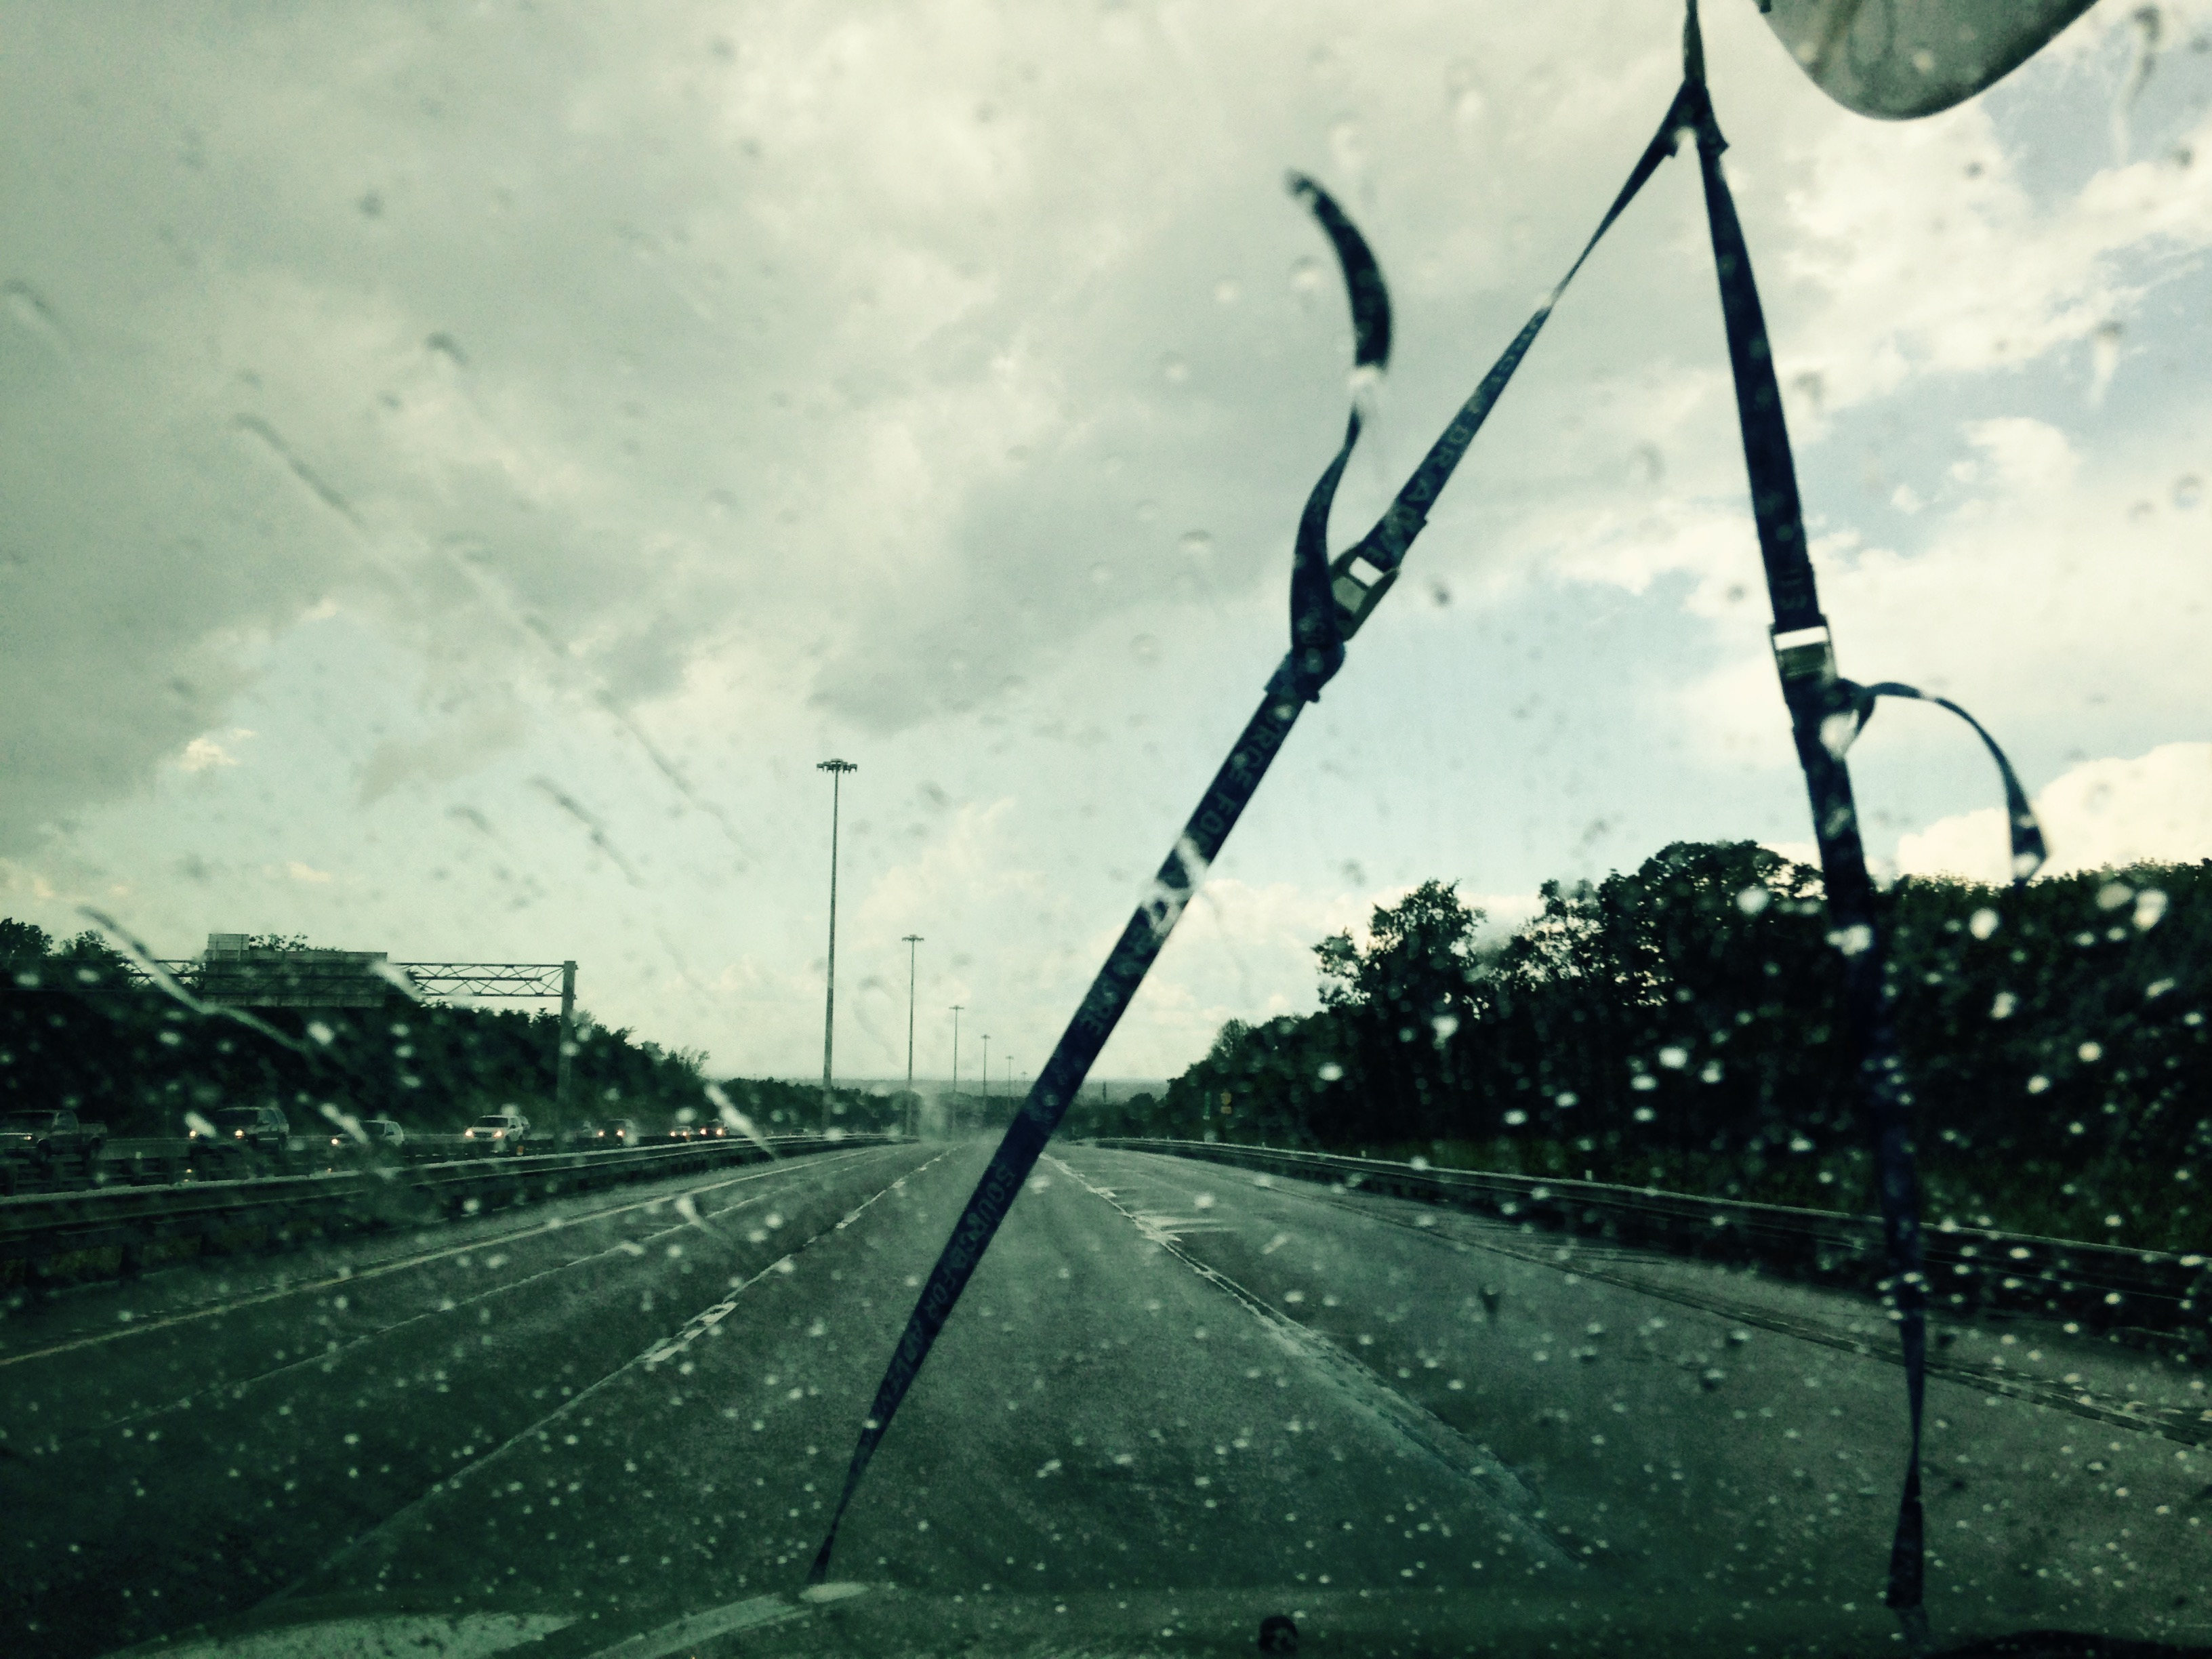 Torrential downpours on the QEW en route back to the store